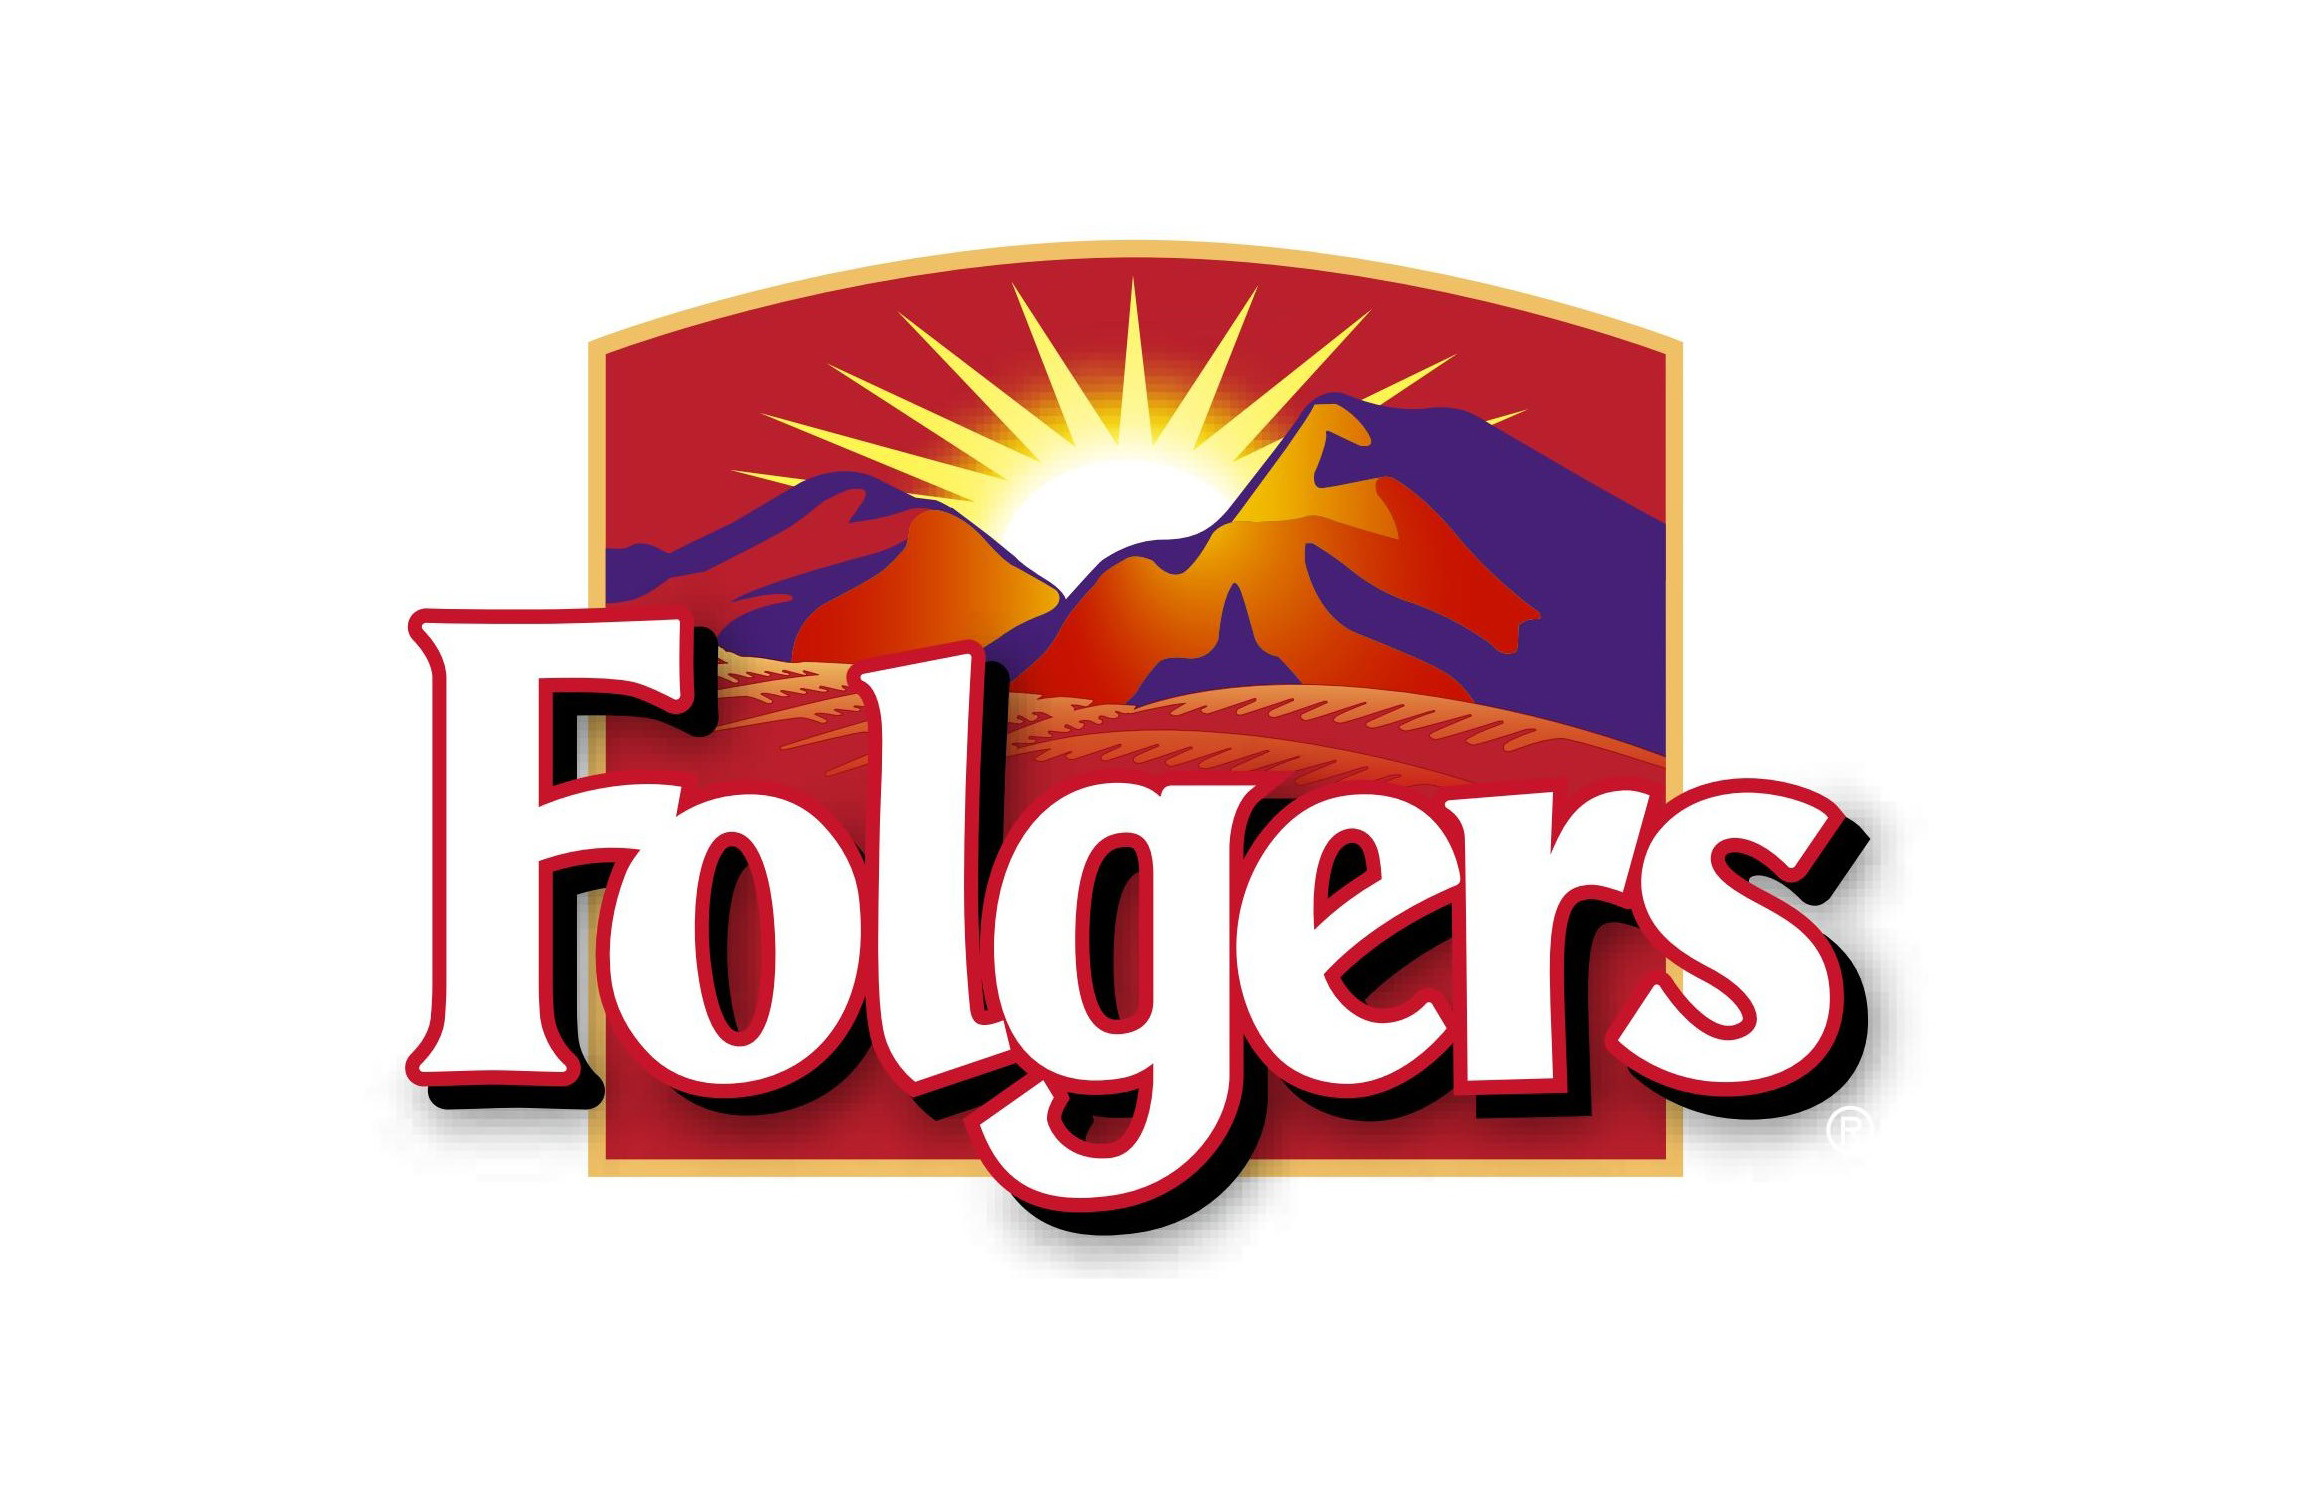 photo relating to Folgers Coffee Coupons Printable known as Folgers Discount codes - The Krazy Coupon Girl